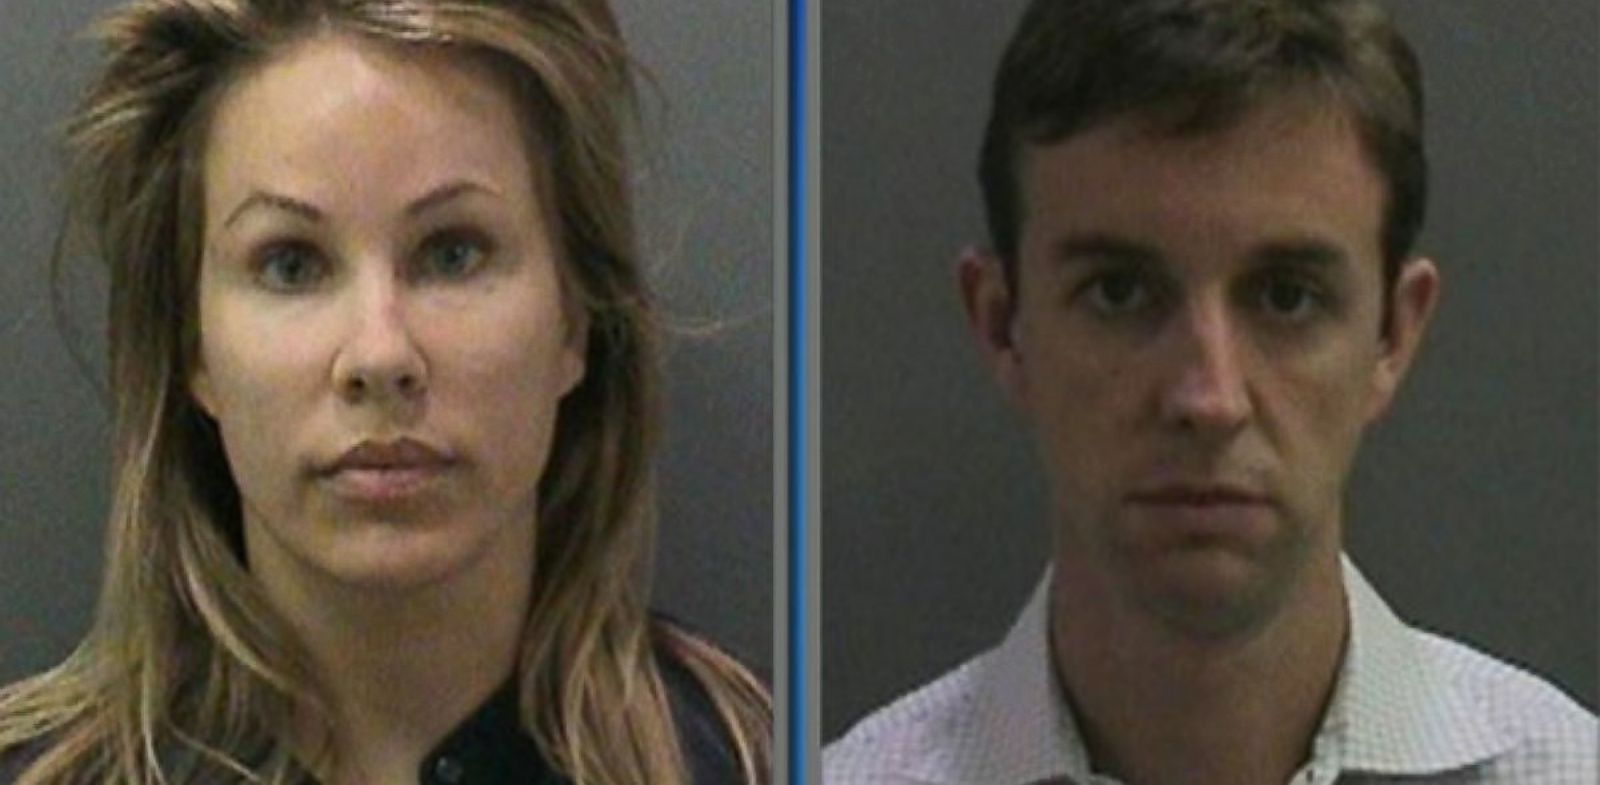 PHOTO: At left, Jill Easter and at right, Kent Easter, of Irvine, Calif.